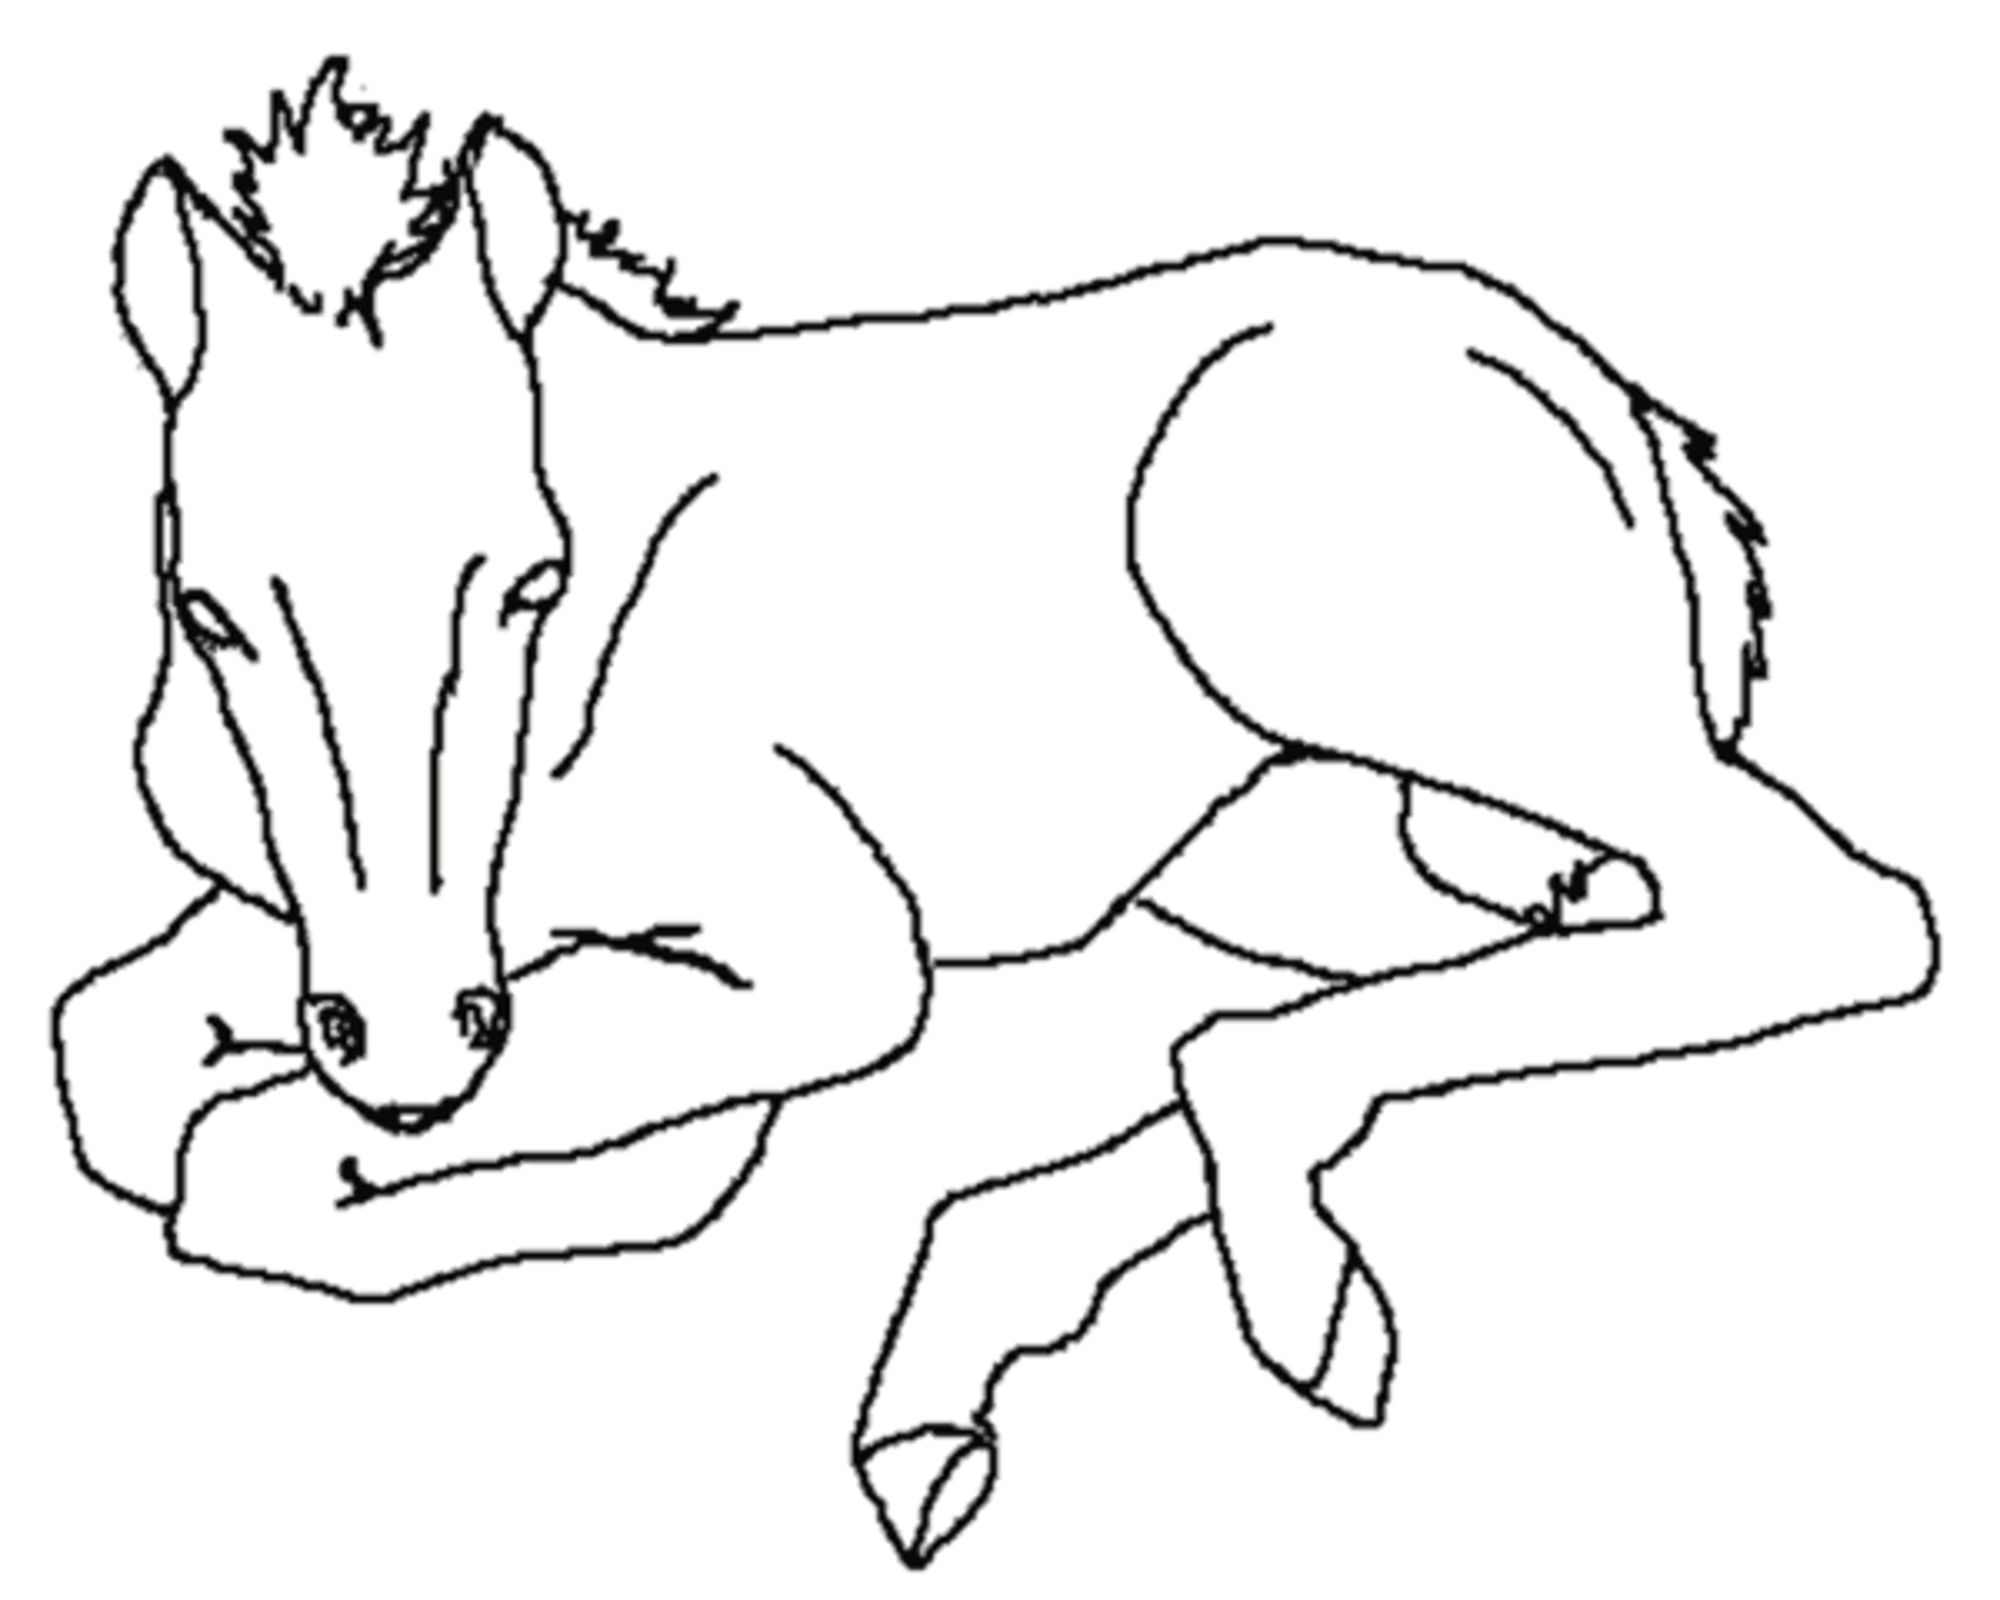 horses pictures to print fun horse coloring pages for your kids printable horses print pictures to